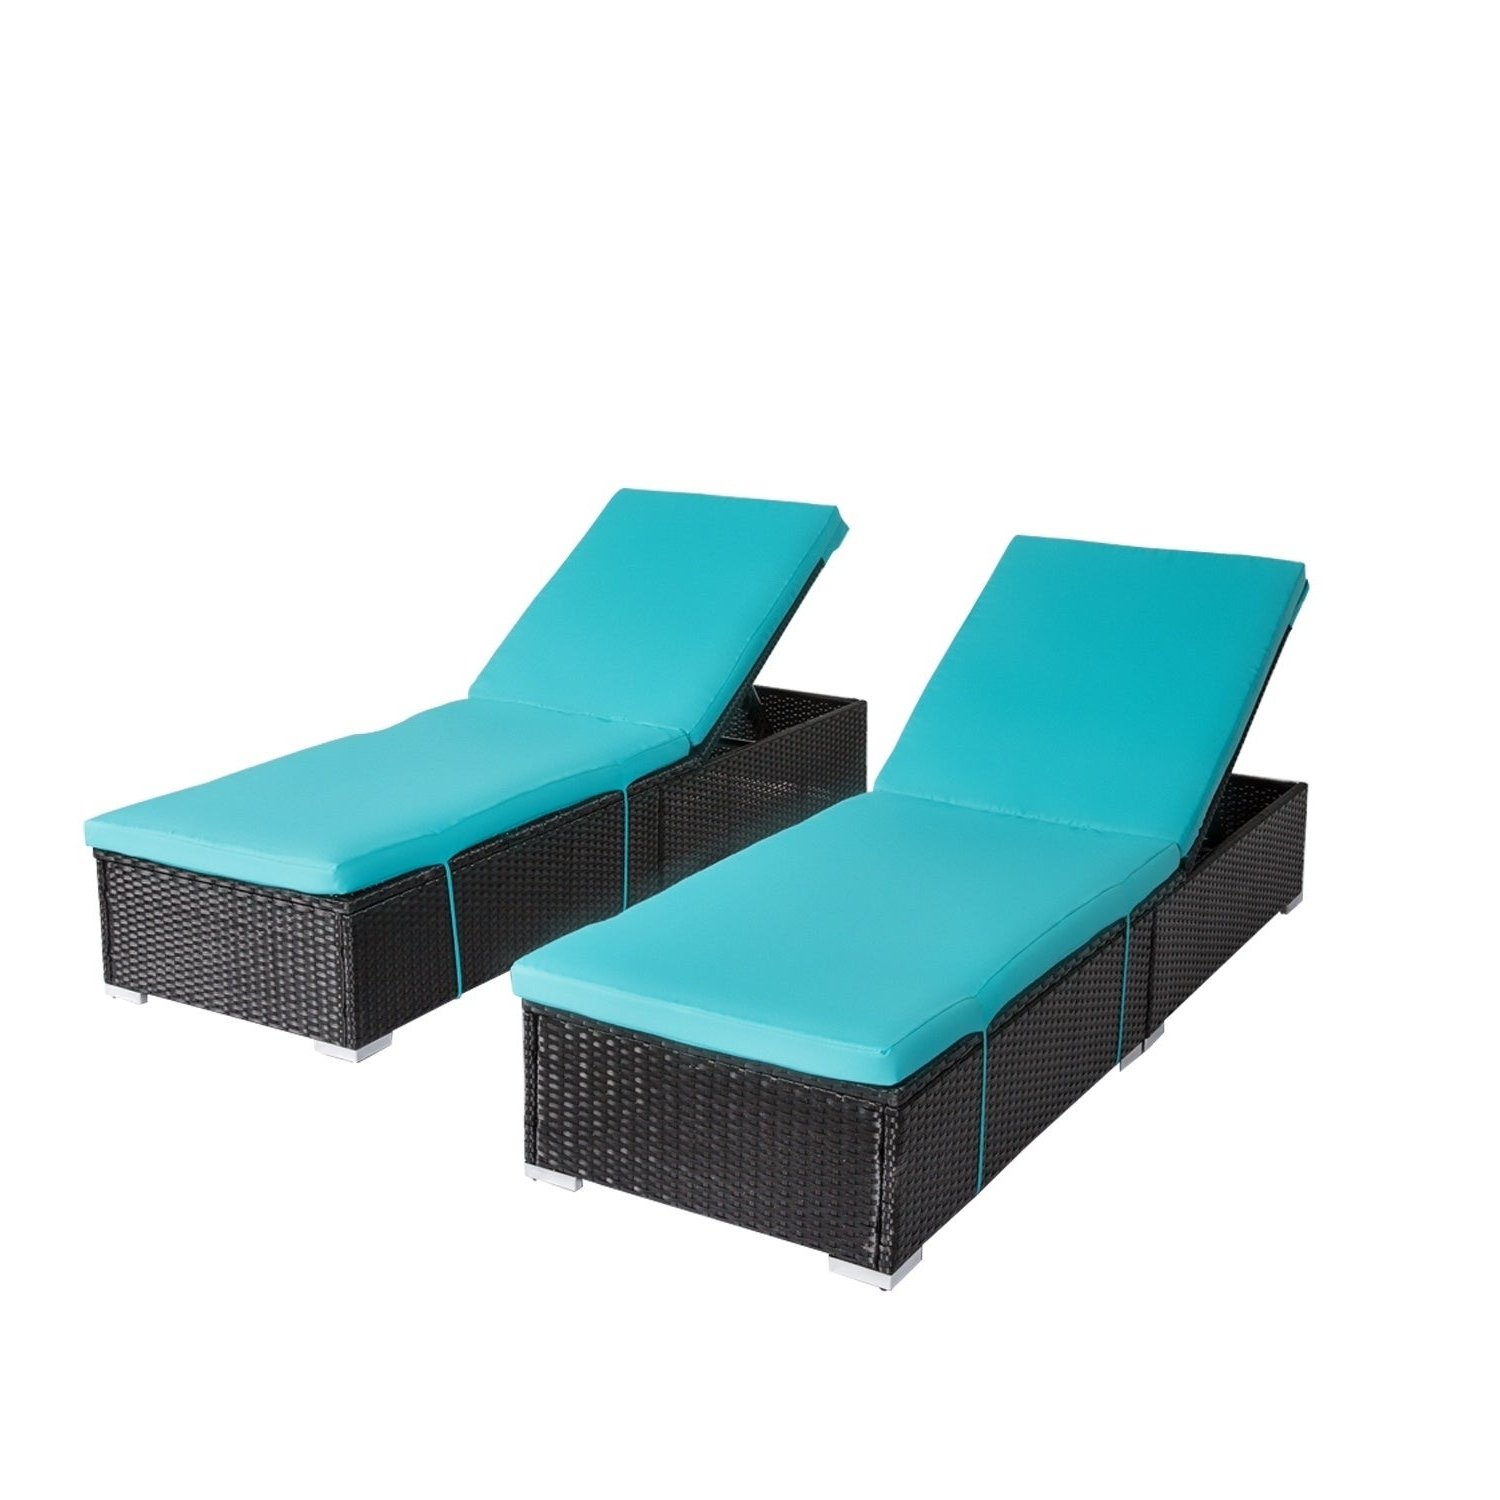 Newest Kinbor Outdoor Adjustable Chaise Lounge Chair Pe Rattan Wicker Chaise Pool  Chairs W/cushions Regarding Outdoor Wicker Adjustable Chaise Lounges With Cushions (View 14 of 25)